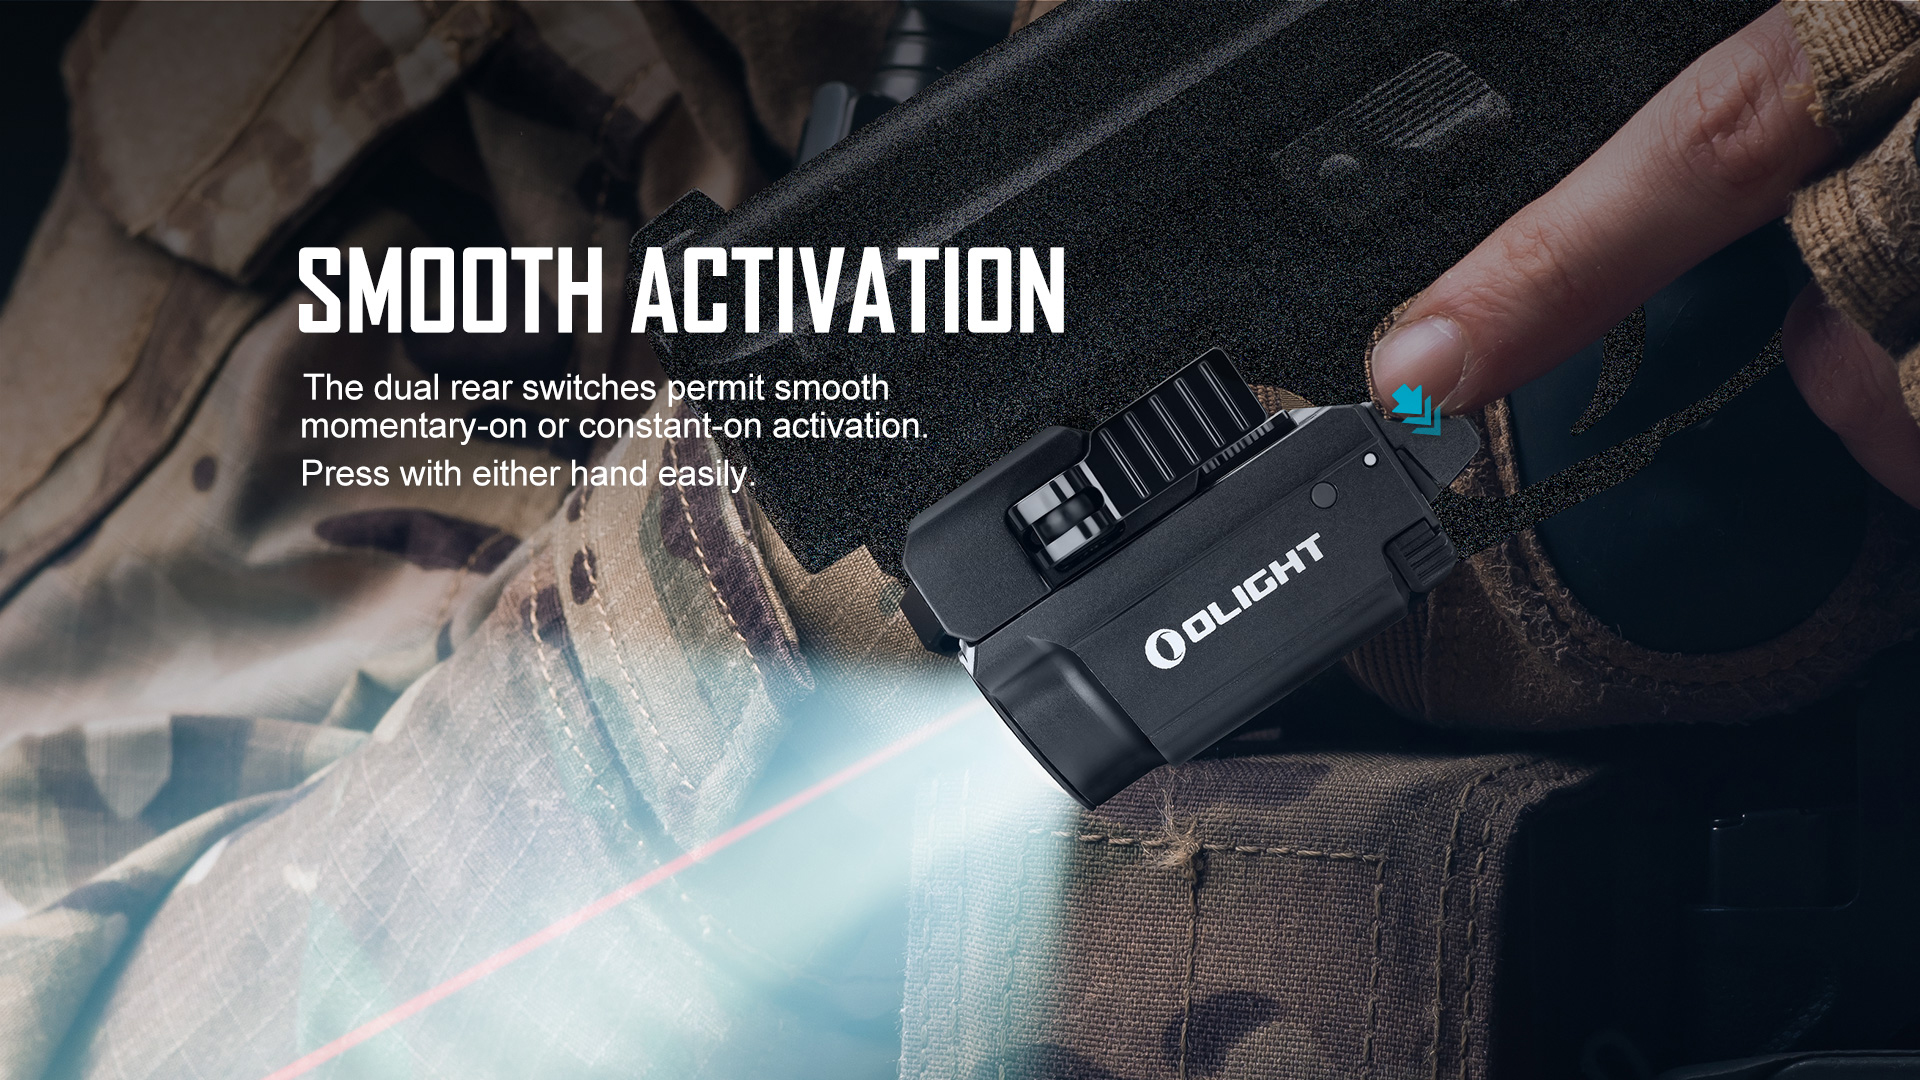 Tactical Laser Flashlight Smooth Activation